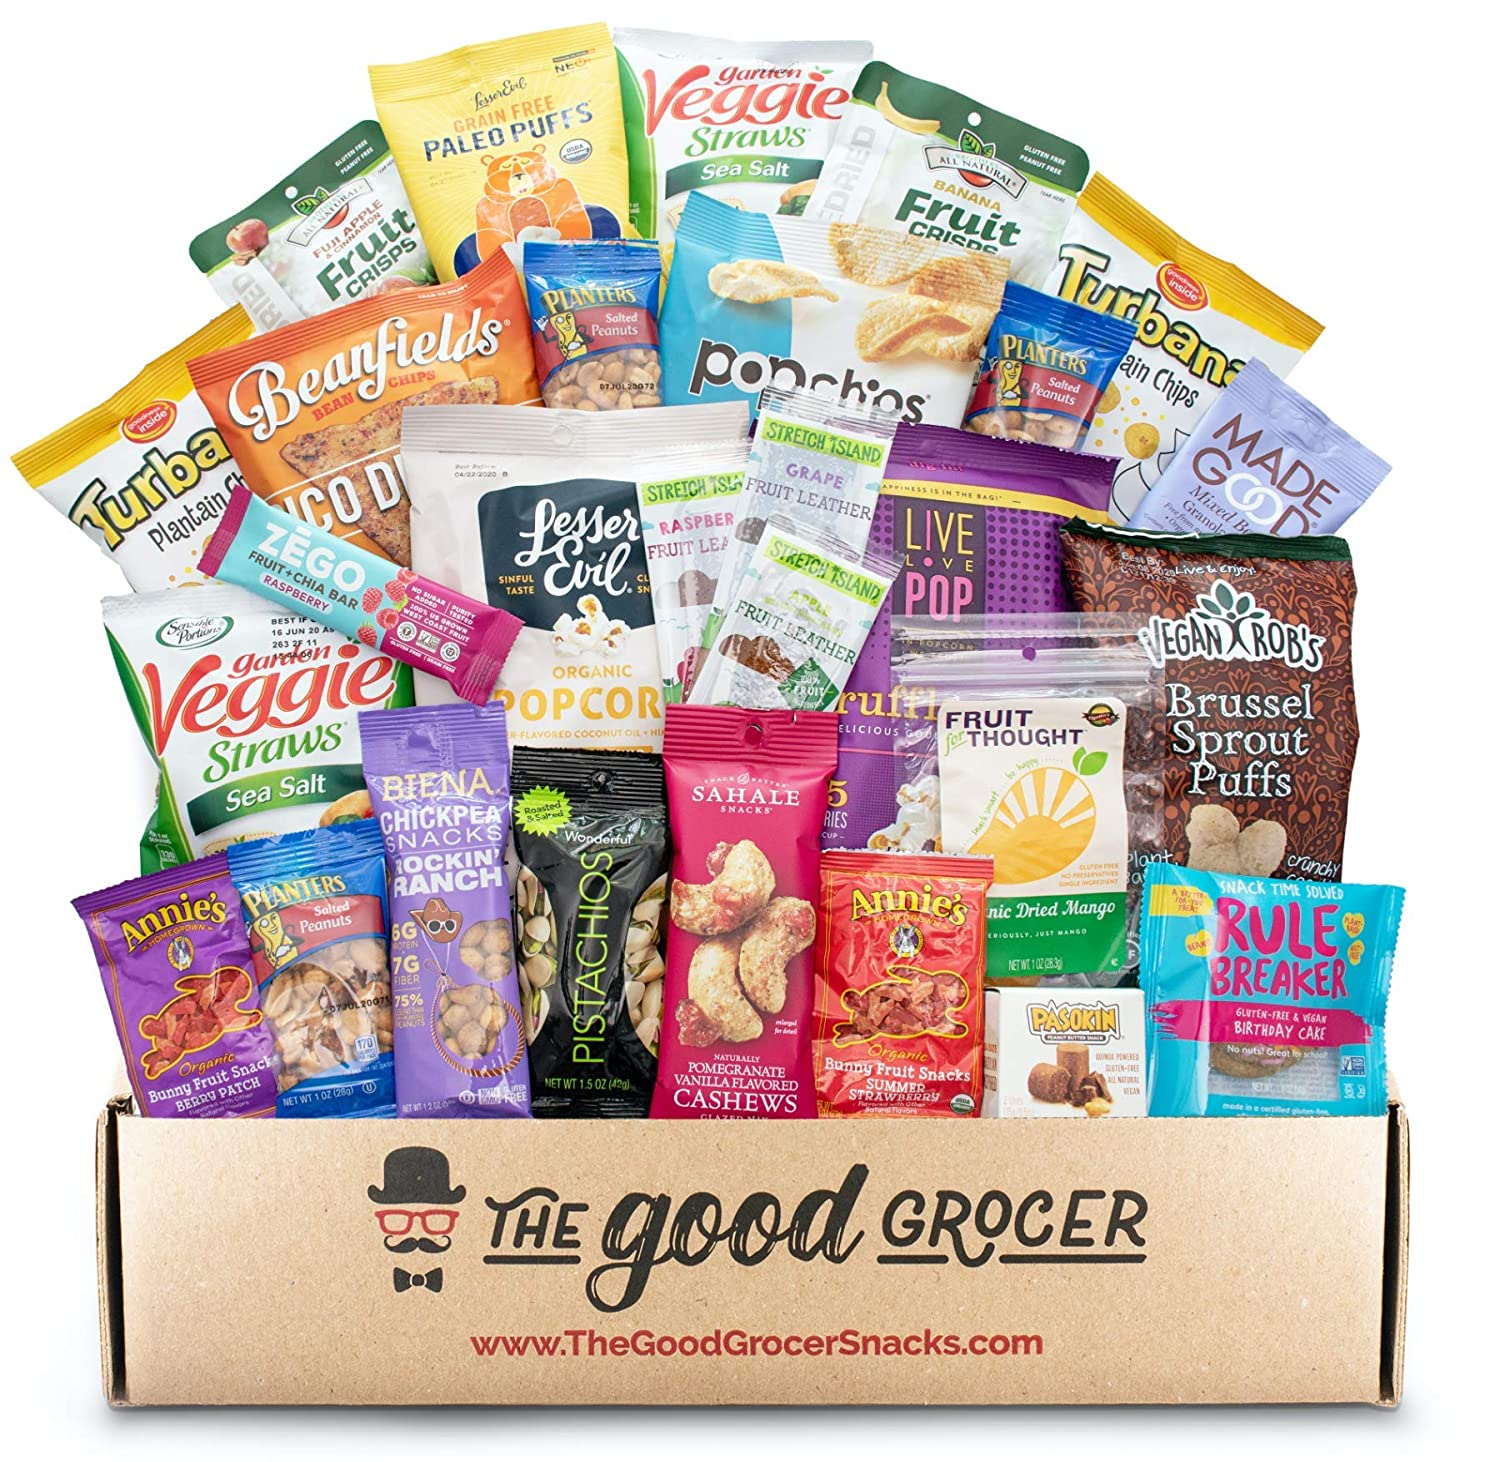 GLUTEN FREE and VEGAN (DAIRY and FIG FREE) Healthy Snacks Care Package (28 Ct): Cookies, Bars, Chips, Fruit, Nuts, Trail Mix, Gift Box Sampler, Office Variety, College Student Care Package, Gift Basket Alternative